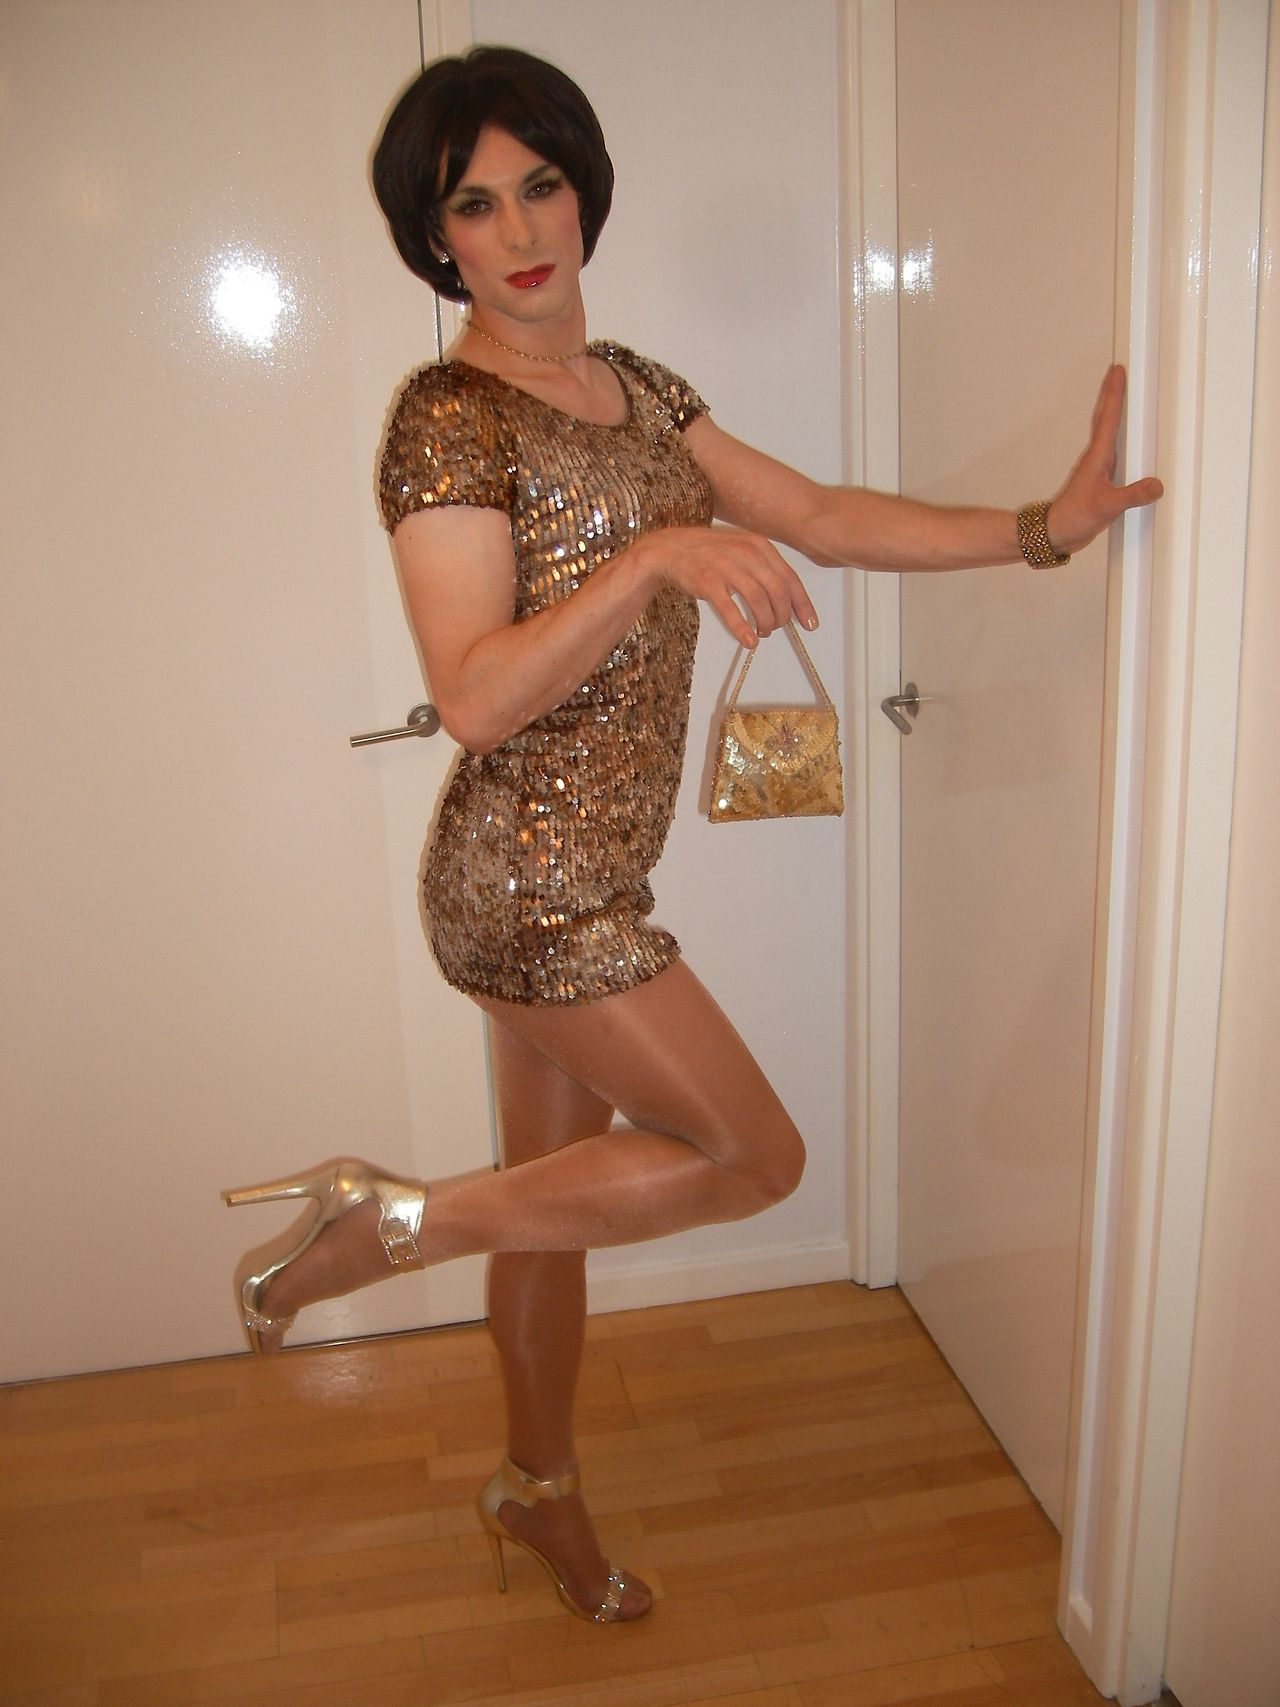 She S Gorgeous Crossdressers Feminine Sexy Girls